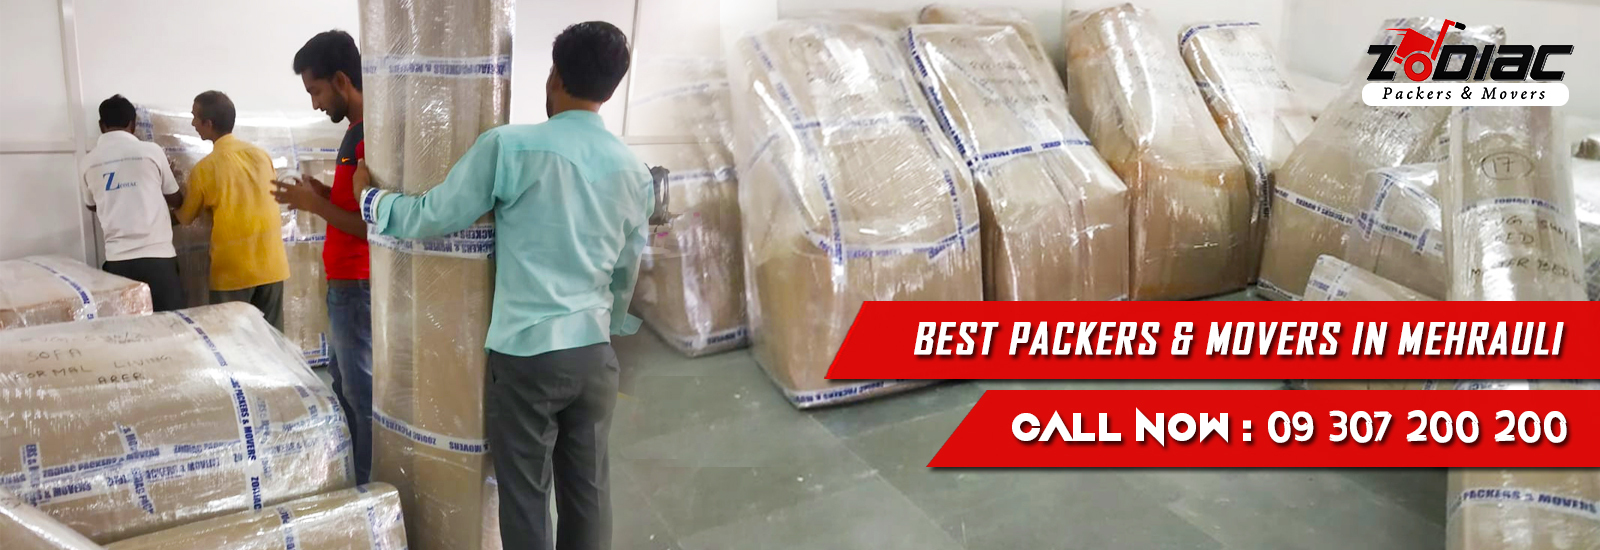 Packers and Movers in Mehrauli